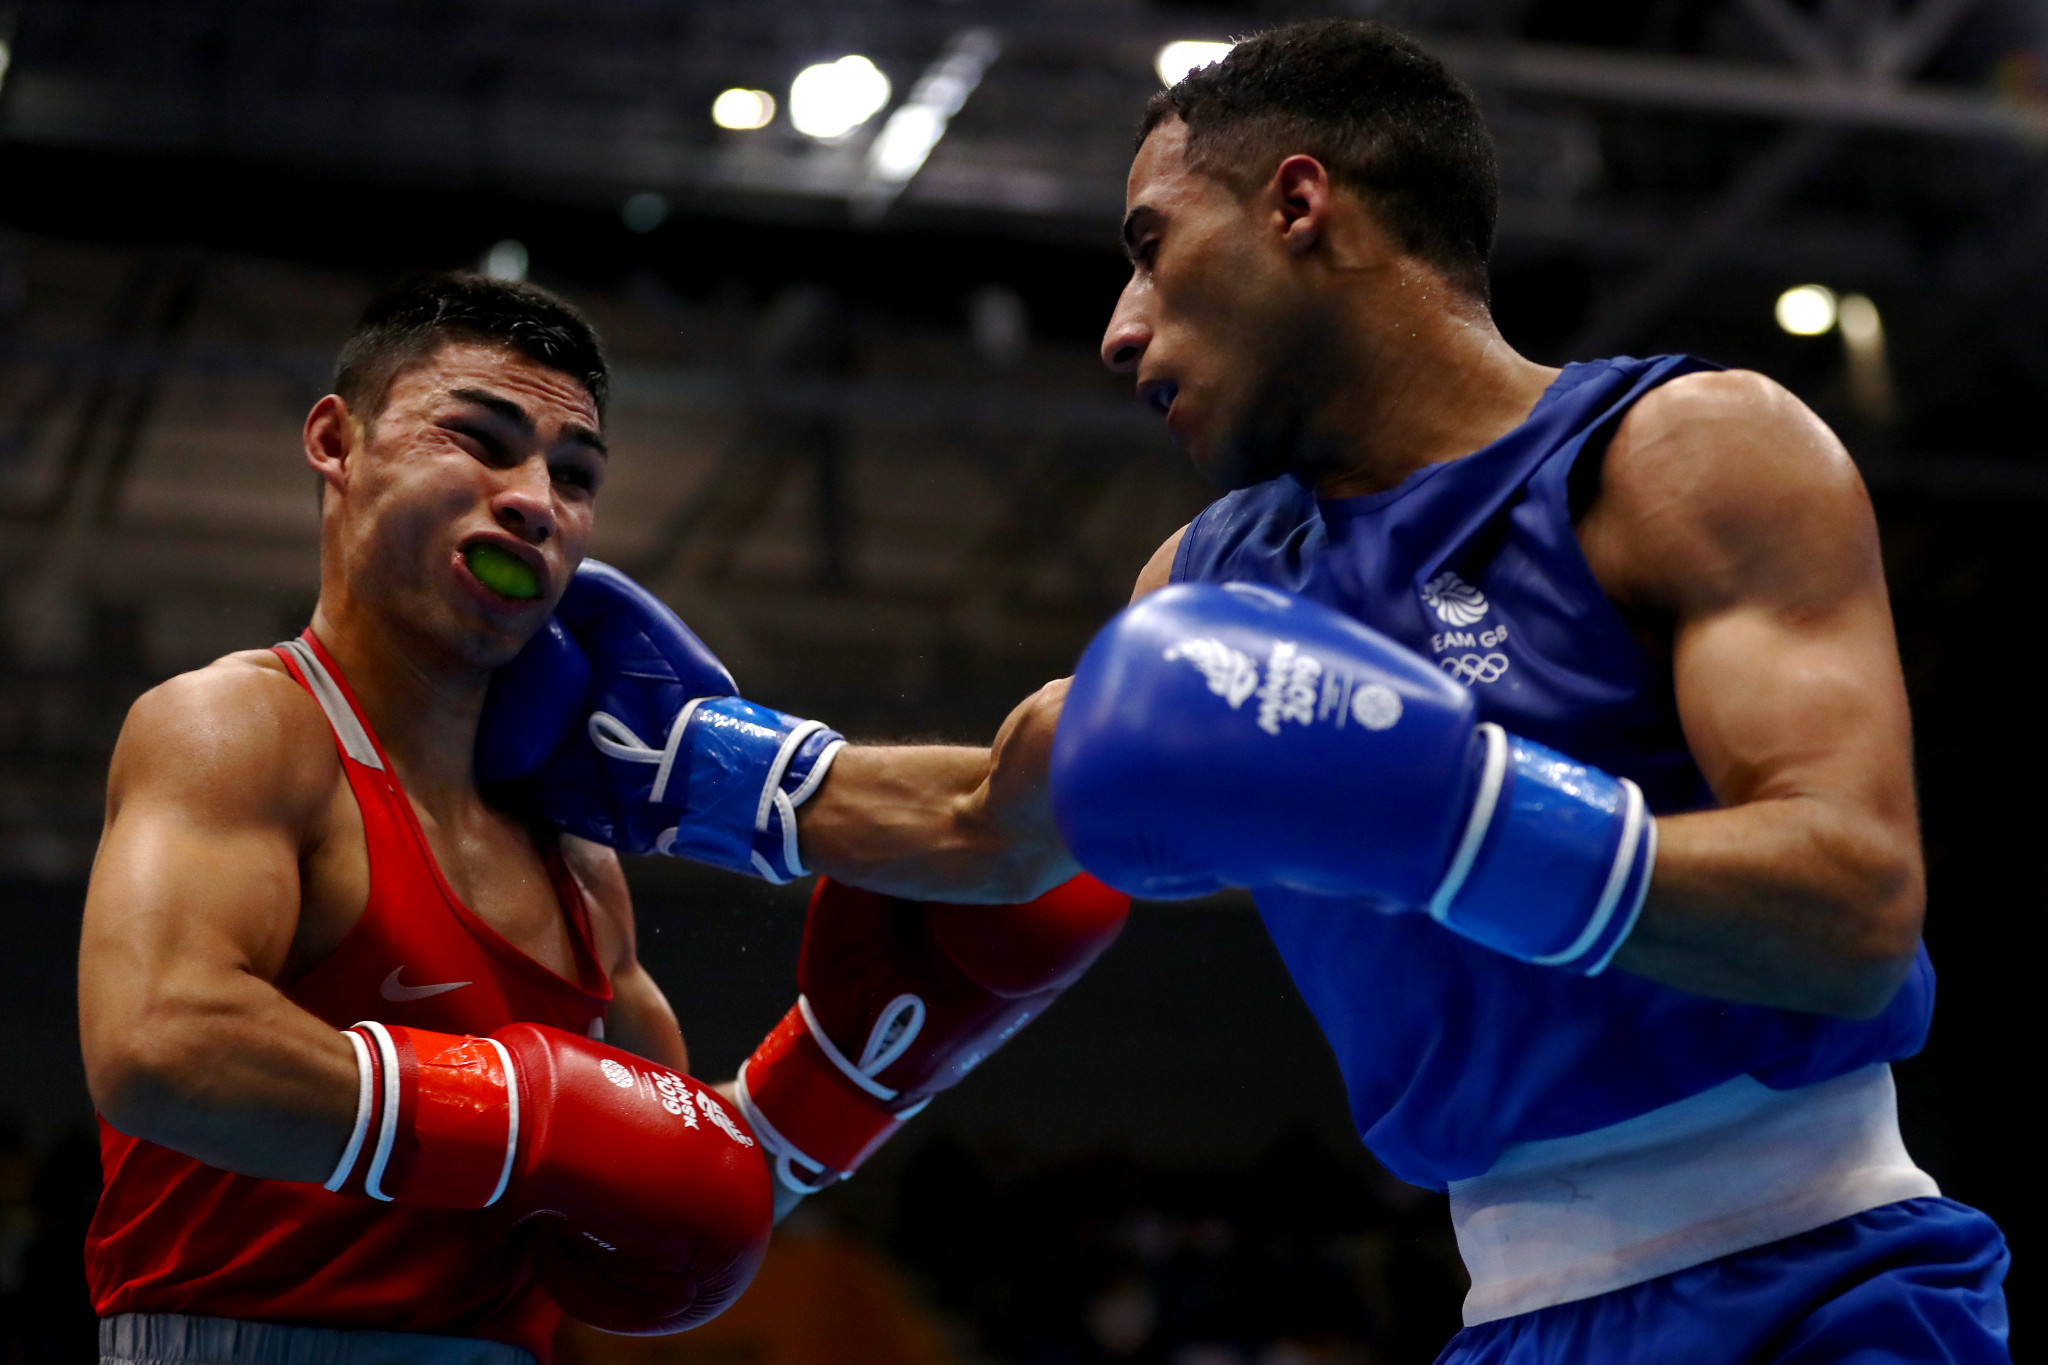 GB Boxing returning to the gym with modified training camp